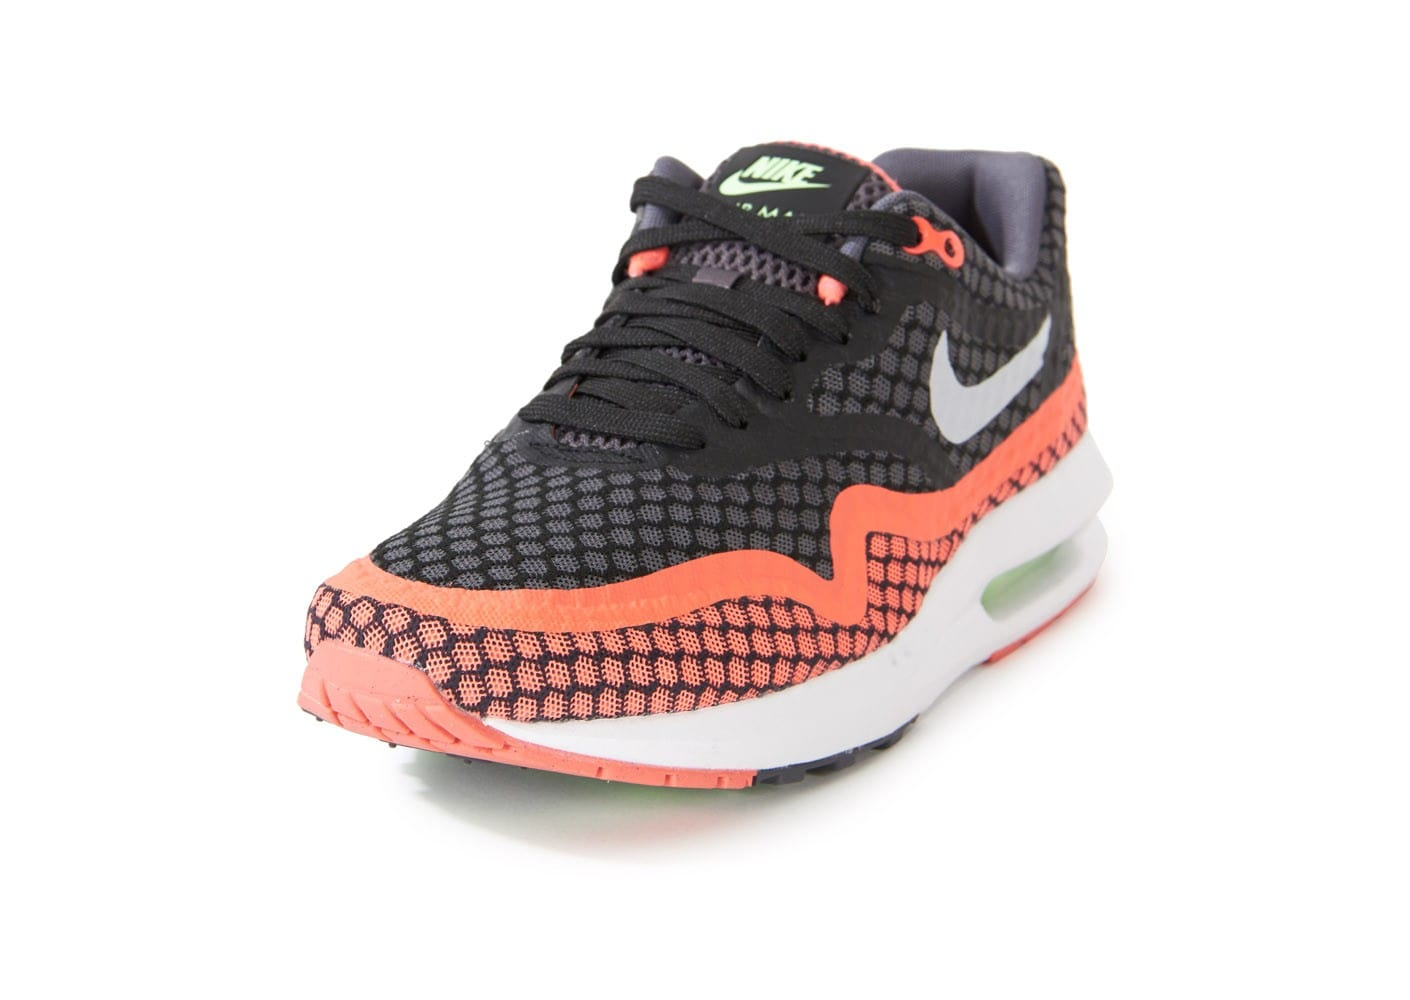 Max Chaussures Air Lunar Nike Breeze Black Lava Homme Hot Baskets 8n0NwPXOk